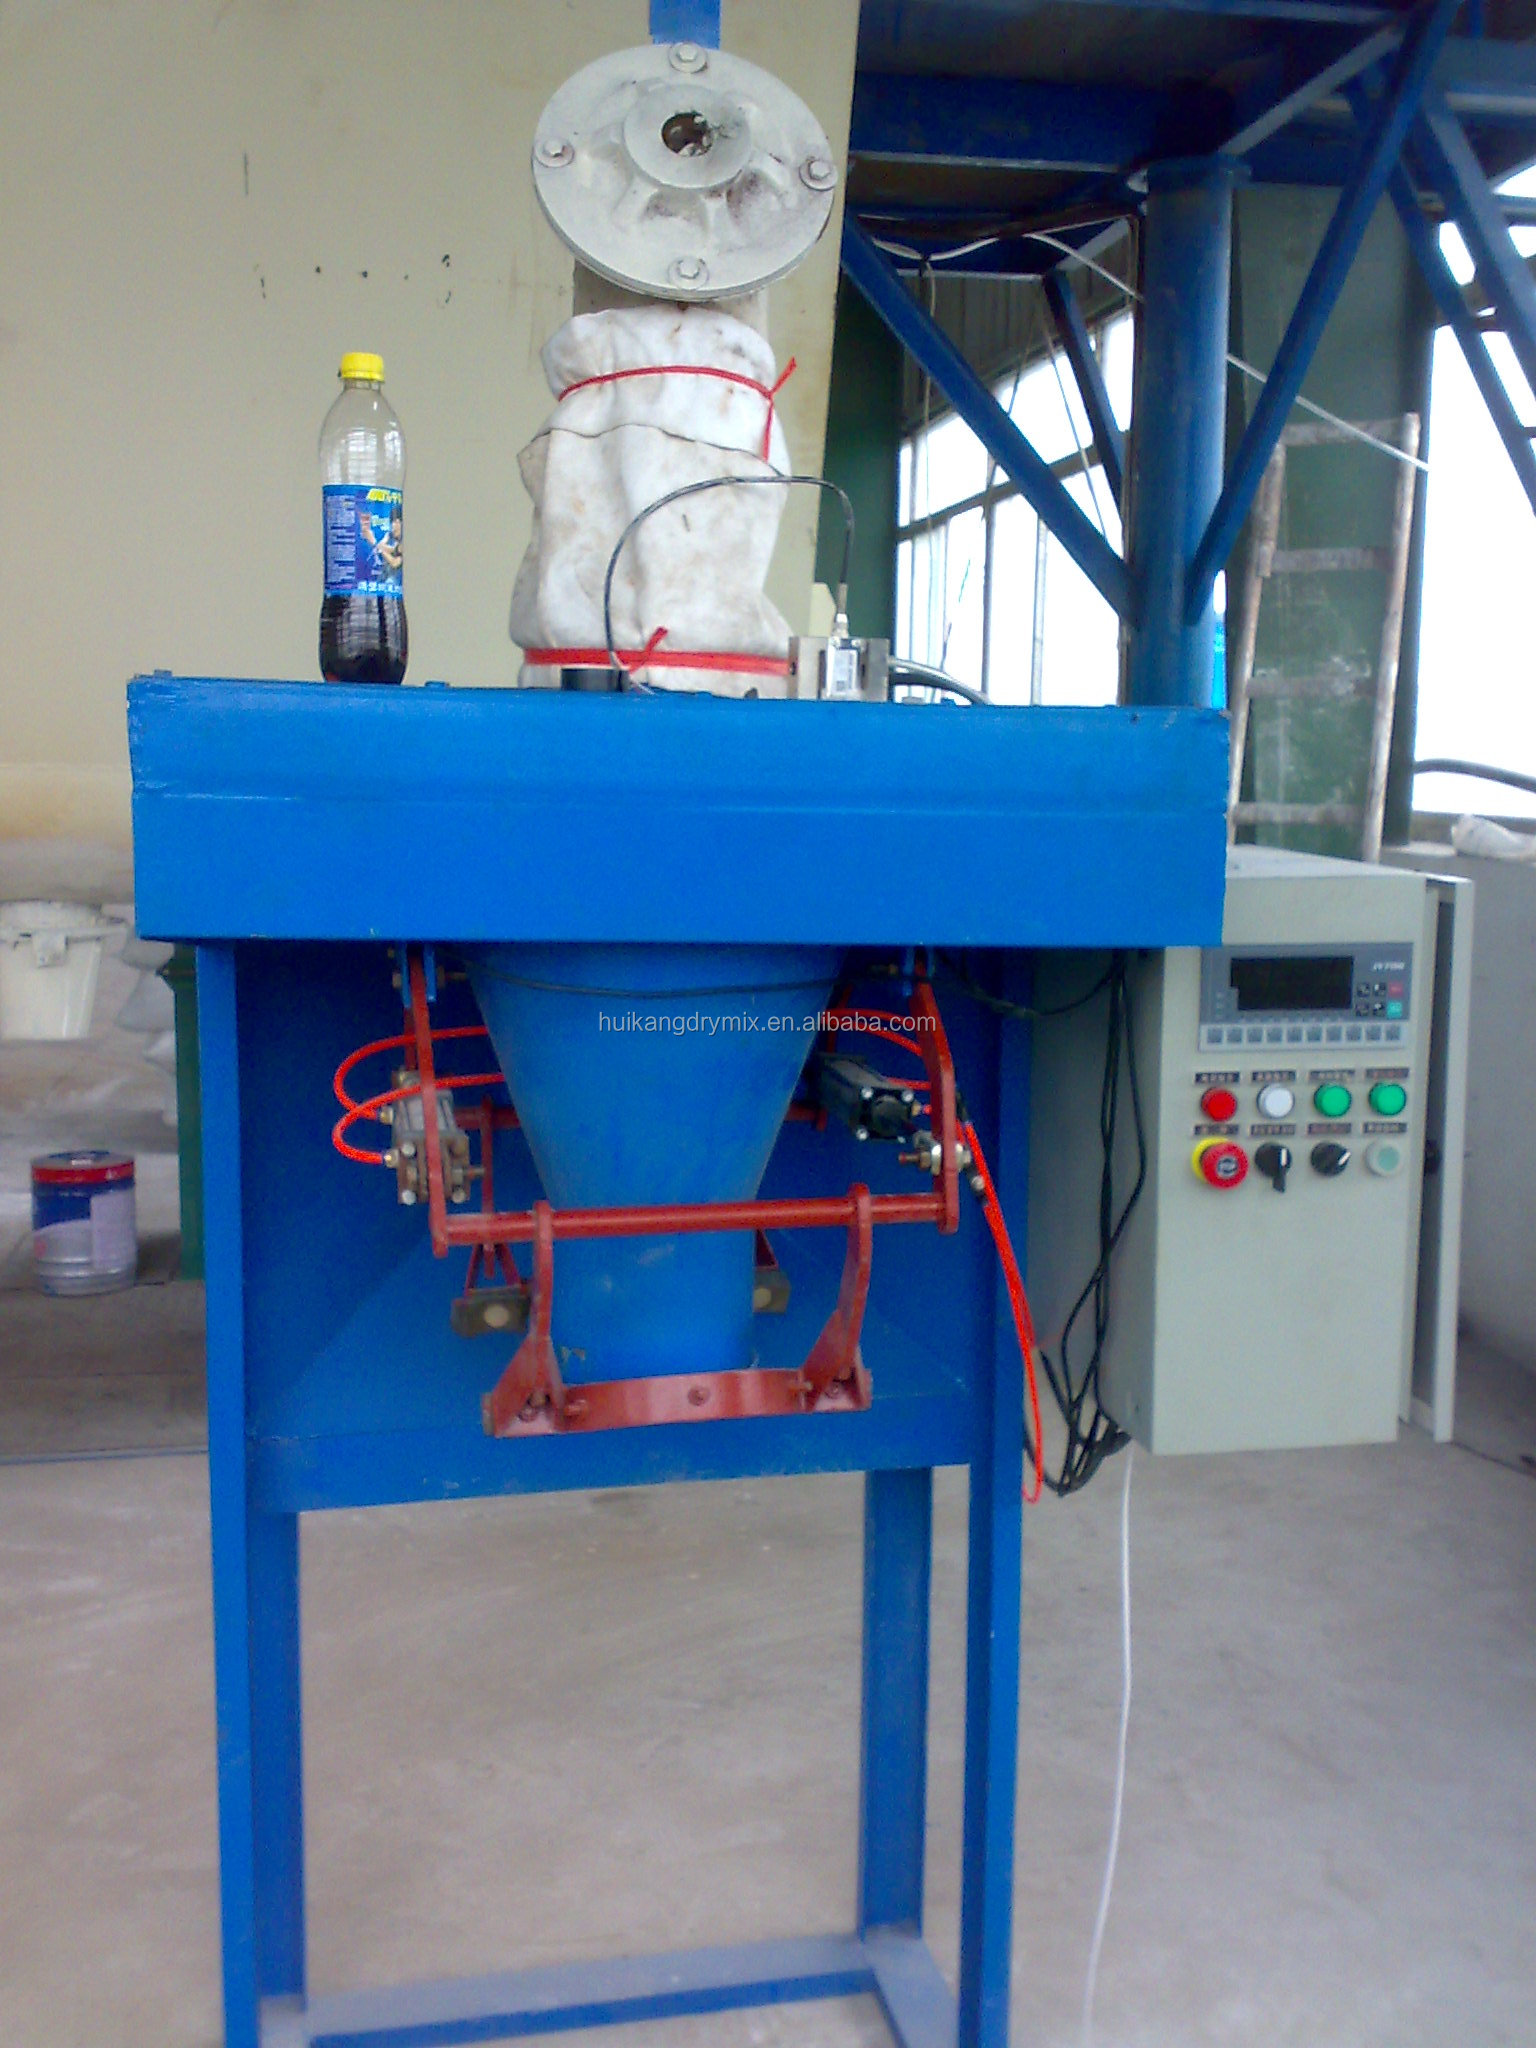 Widely Used Dry Putty Plaster Powder Lime Sand Concrete Packing Machine Cement Mortar Mixing Machine